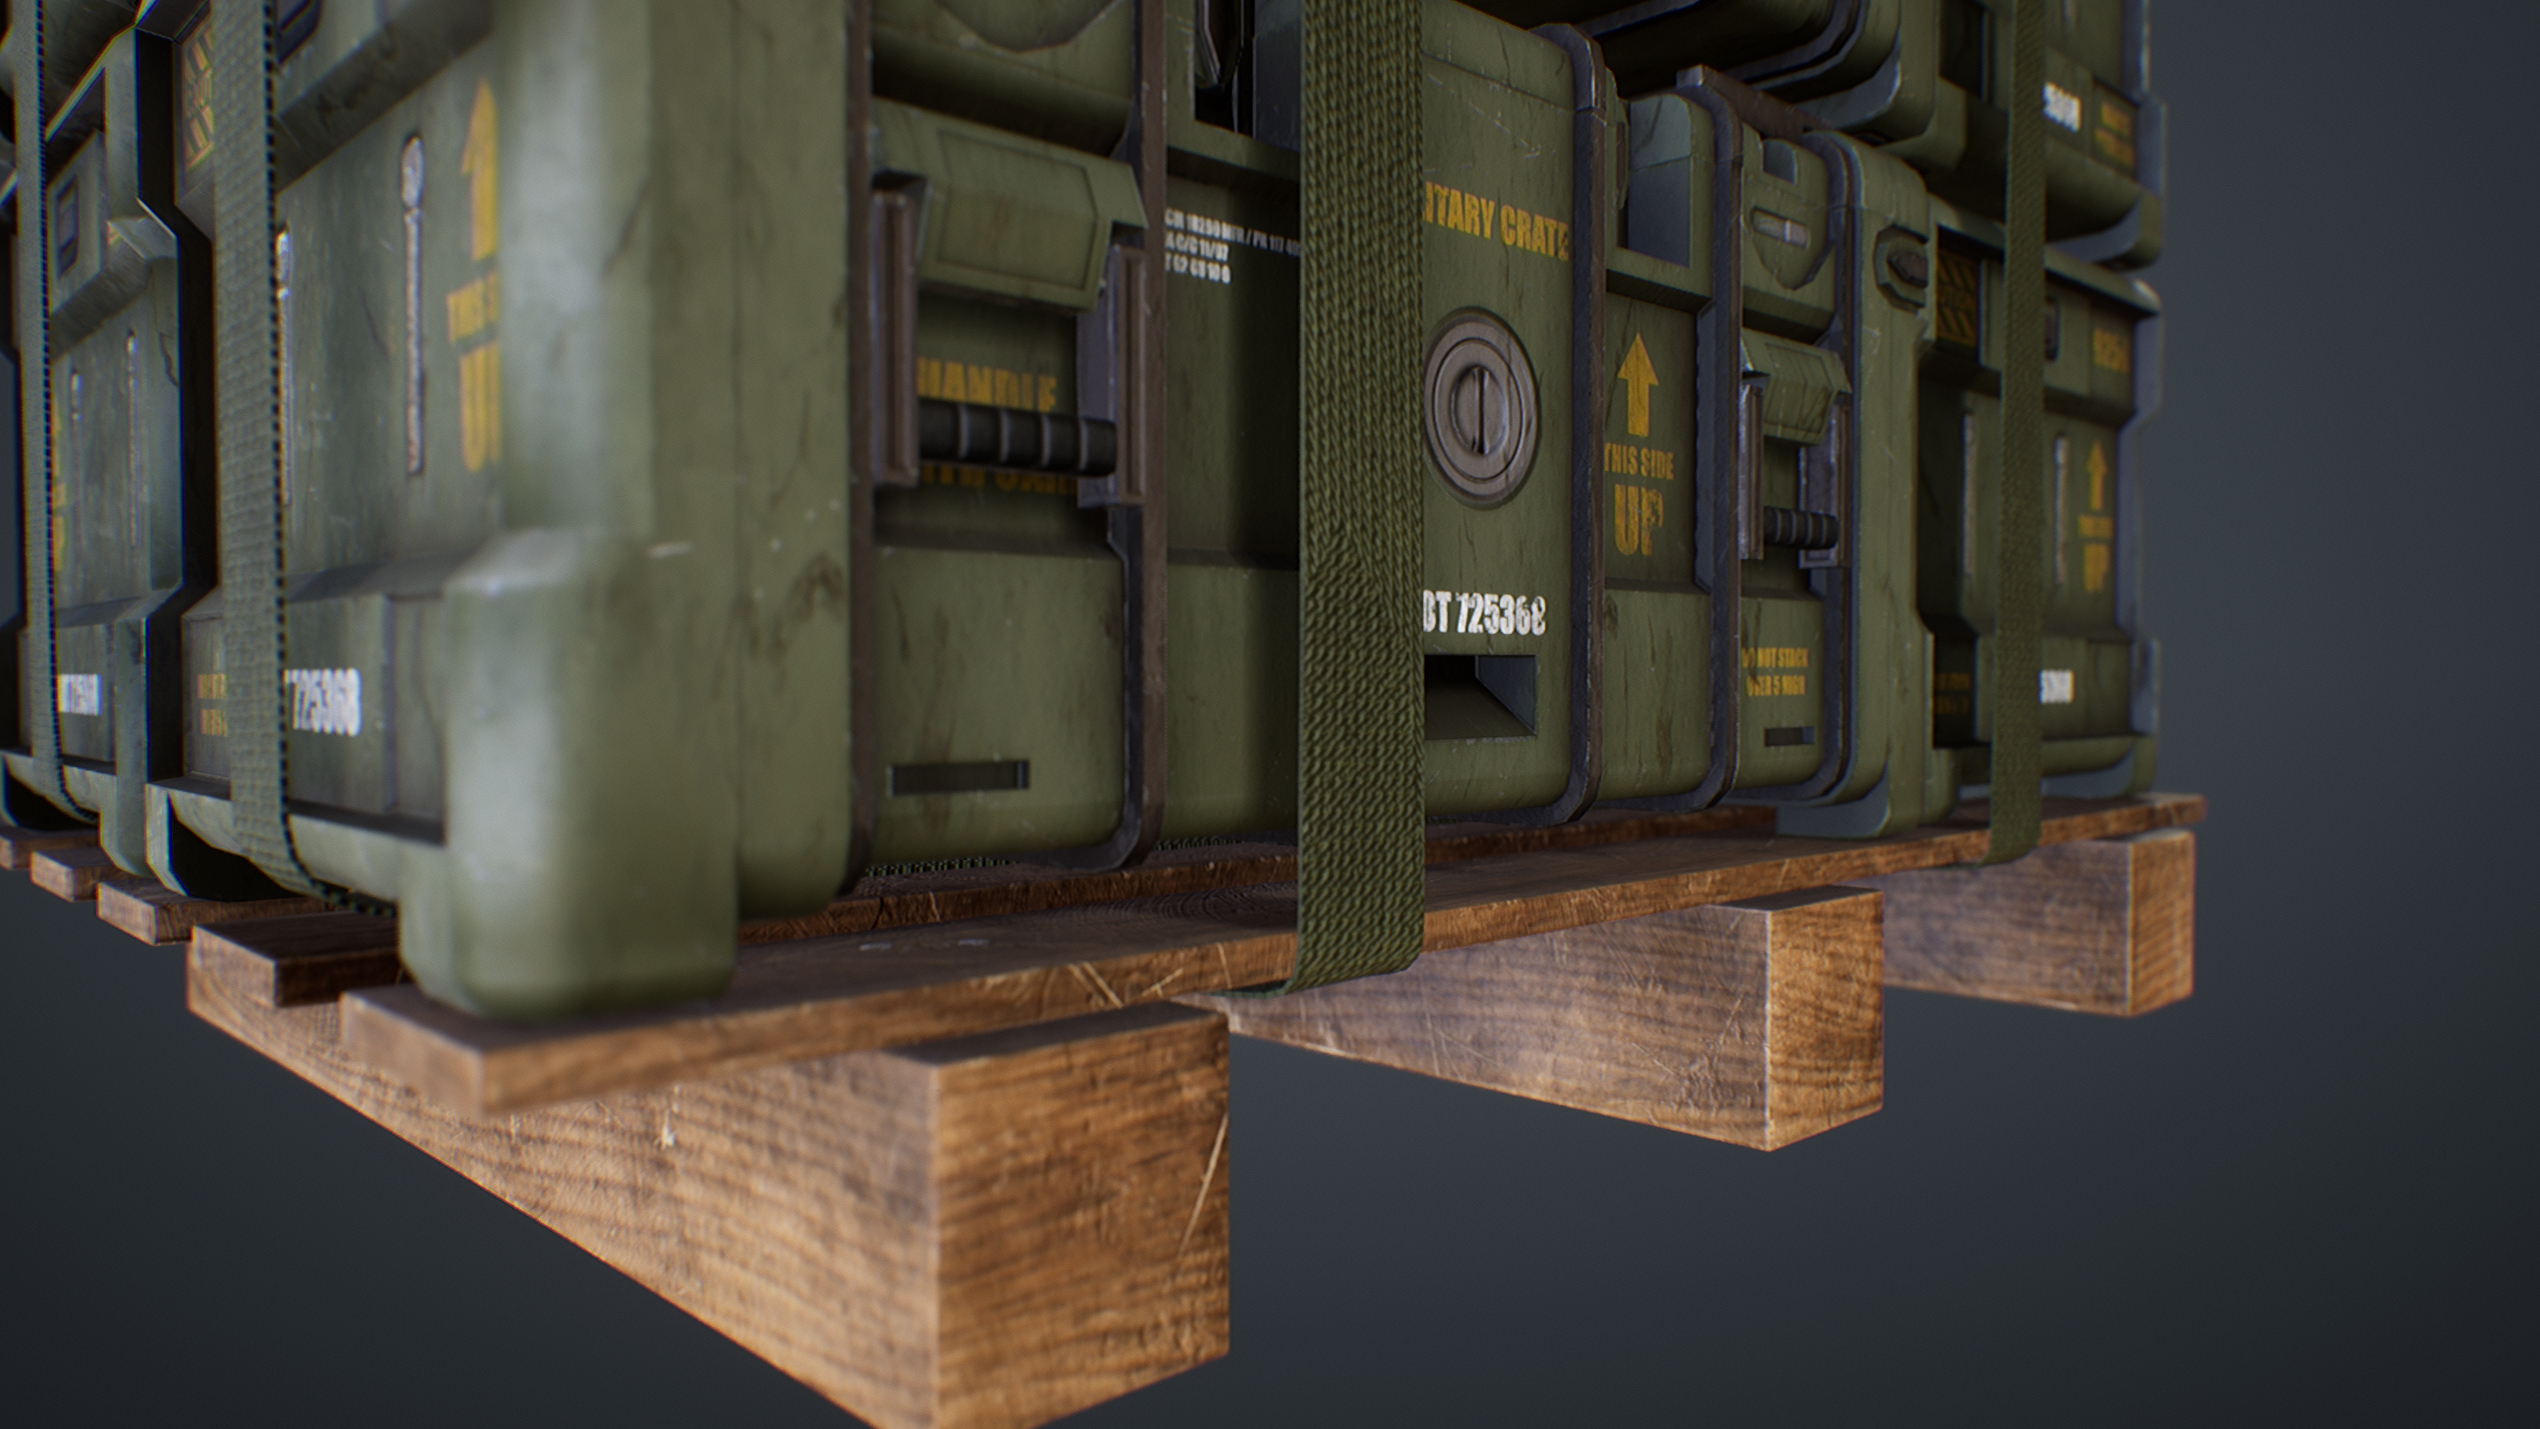 UE4 screenshot close up detailed shot of the crates, straps and wooden pallet